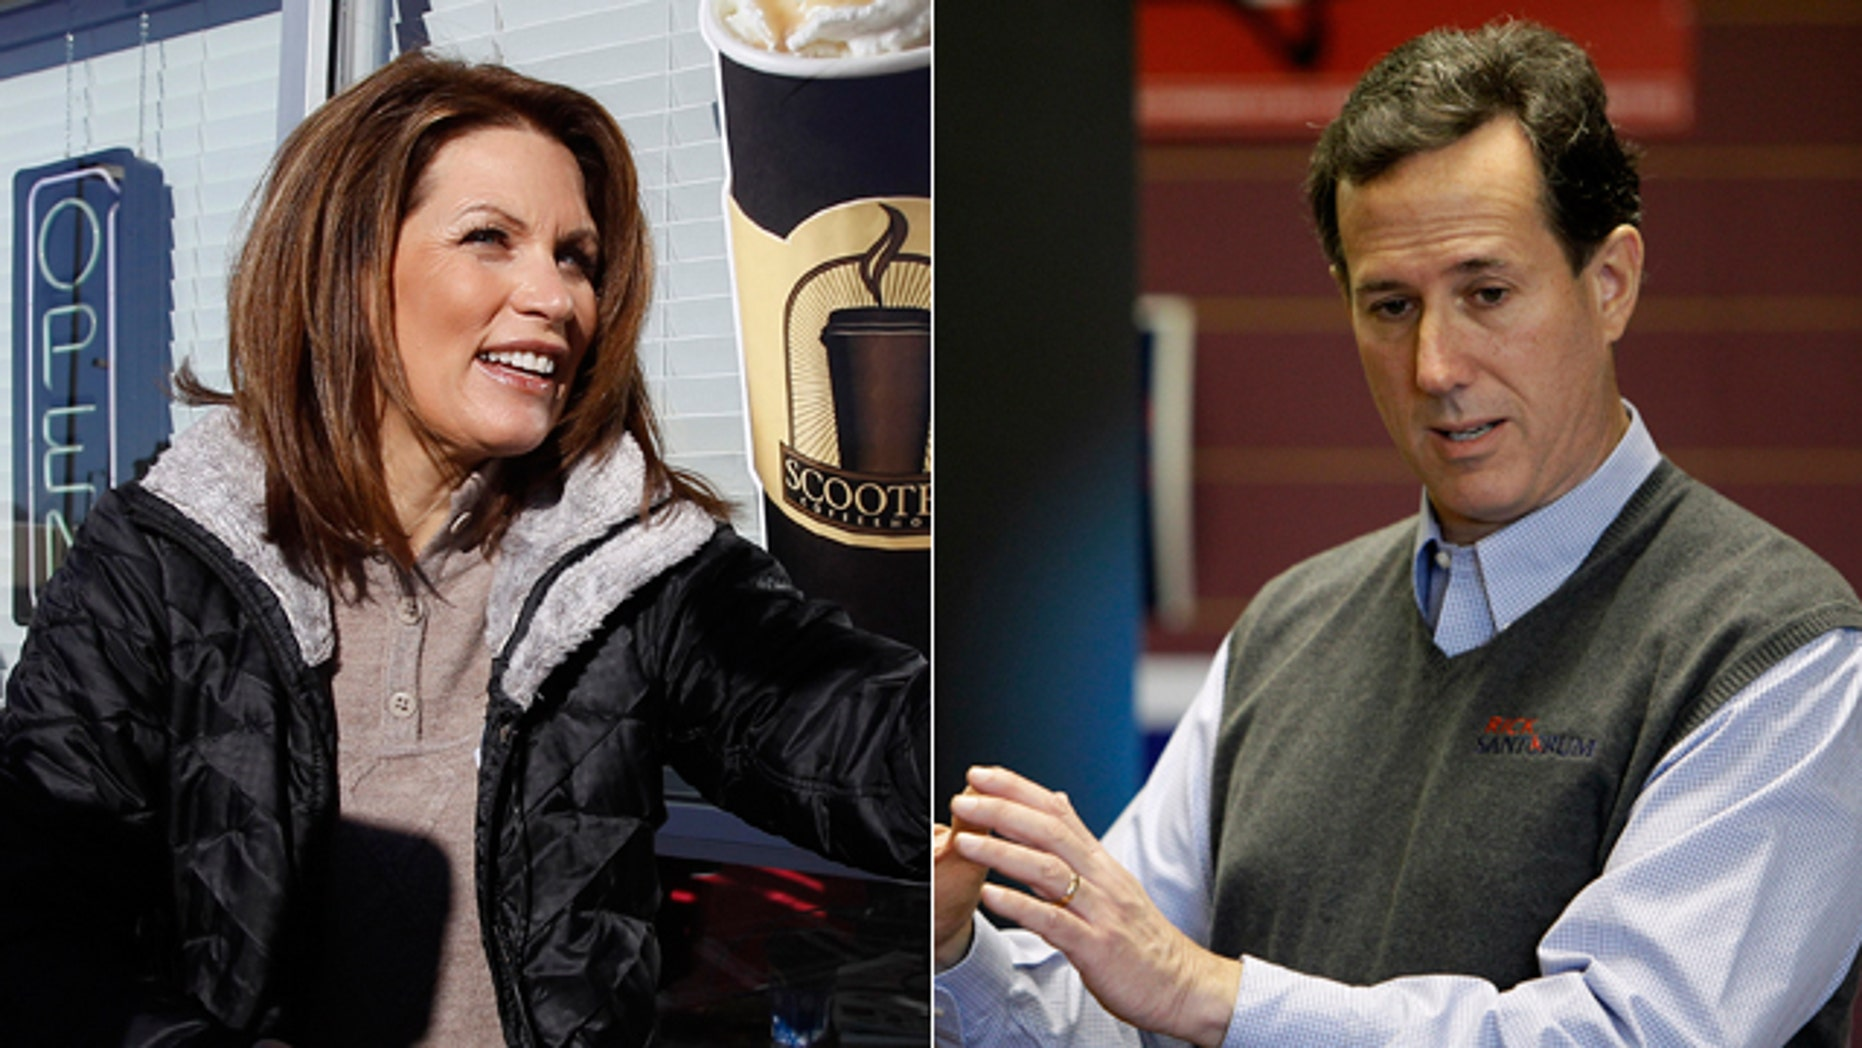 Two politically active pastors in Iowa's robust evangelical conservative movement are trying to persuade either Michele Bachmann, left, or Rick Santorum, right, to consider quitting the Republican presidential race.